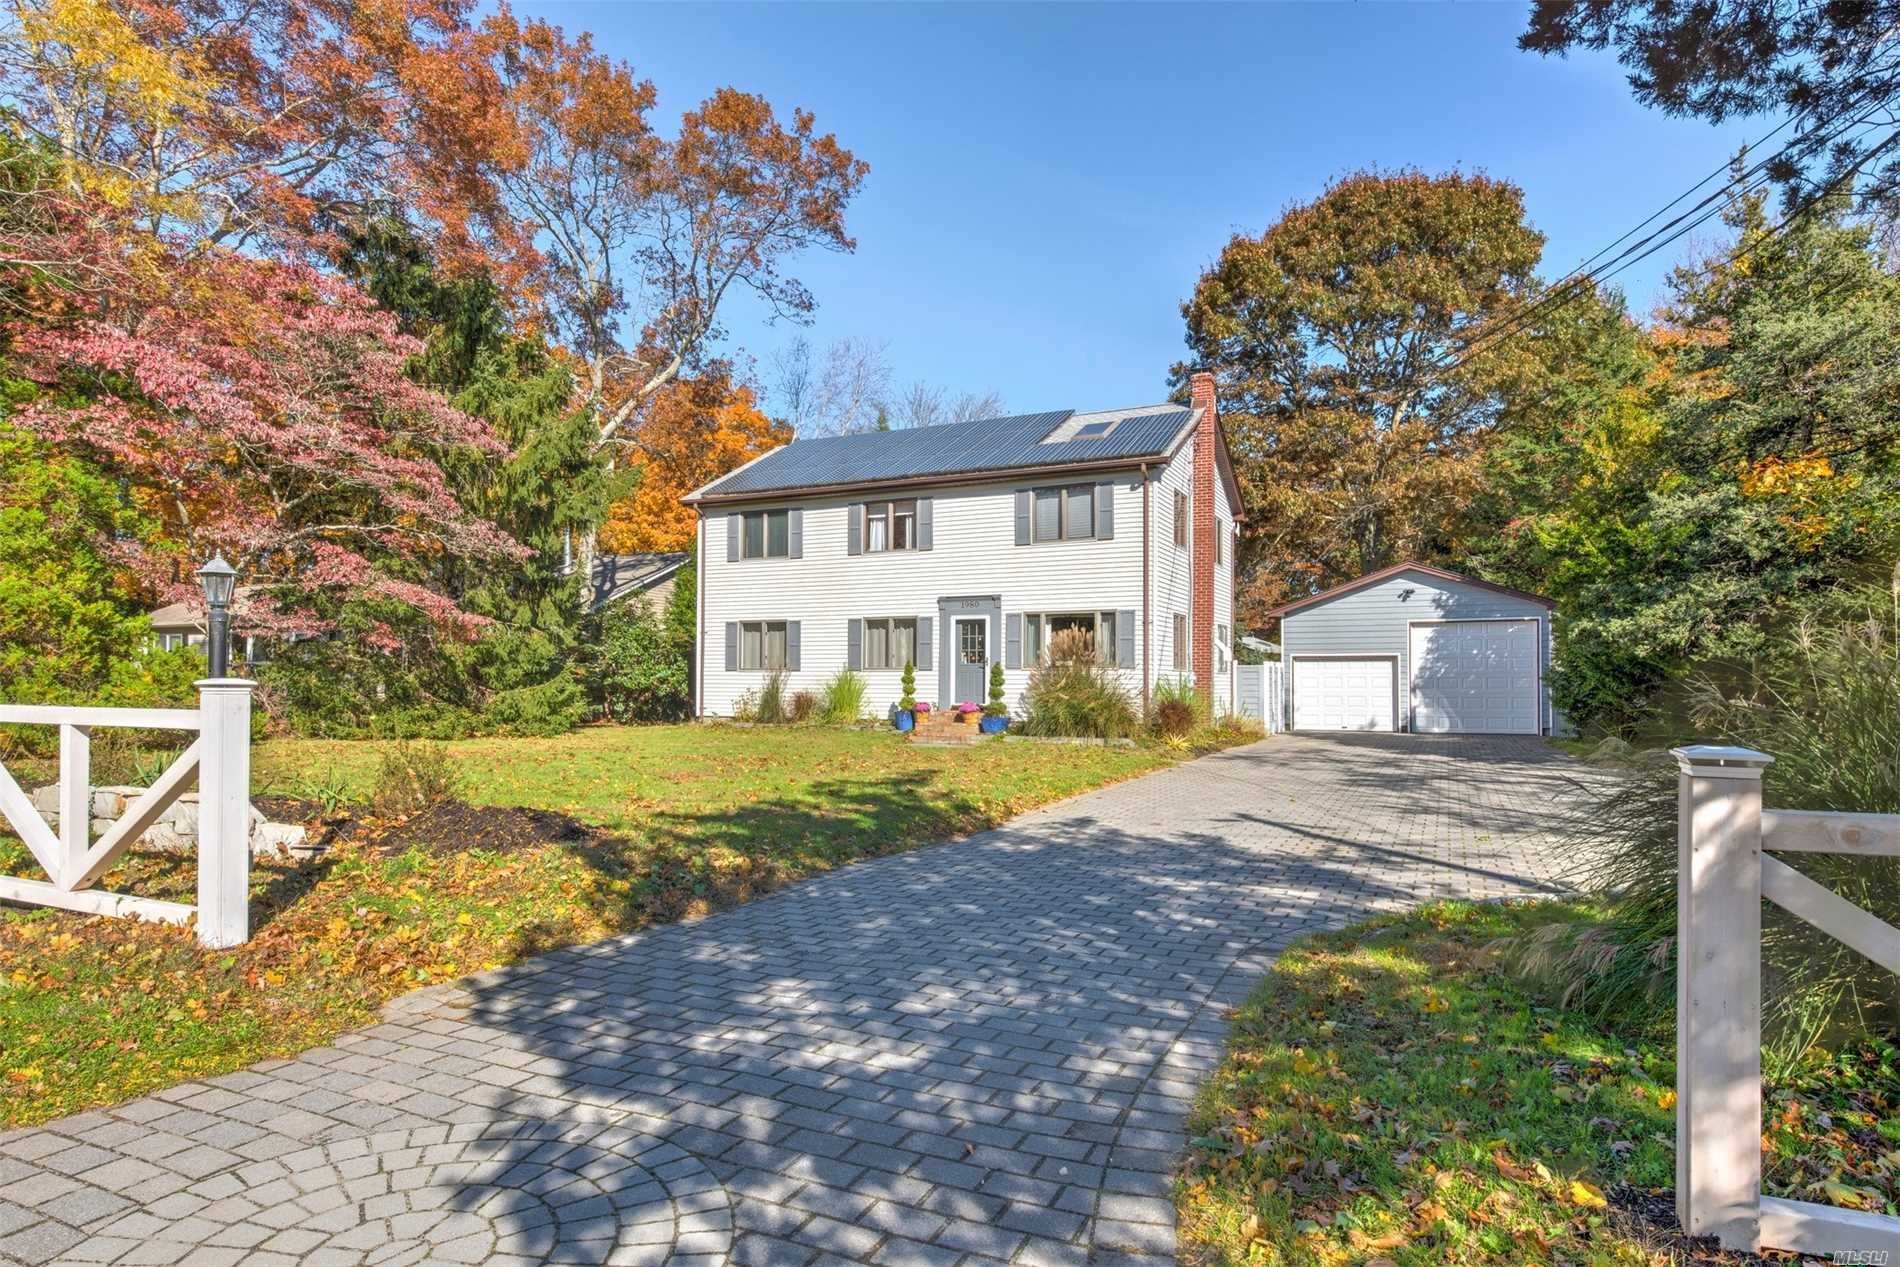 Enjoy All The North Fork Has To Offer At This Chic Updated Home In Peconic. Spacious Floorpan With 4 Bedrooms, 3 Baths, Living Room, Den, Kitchen, & Dining Room. Gorgeous Custom And Designer Touches Throughout Features An Amazing Custom Kitchen And A Master Suite With Spa Like Bath,  Cathedral Ceiling, And Walk In Closet. All This Plus Solar Panels, A Full Basement, Oversized Detached Garage, And A Private Backyard With Room For A Pool. Short Distance To Goldsmith's Inlet Beach.